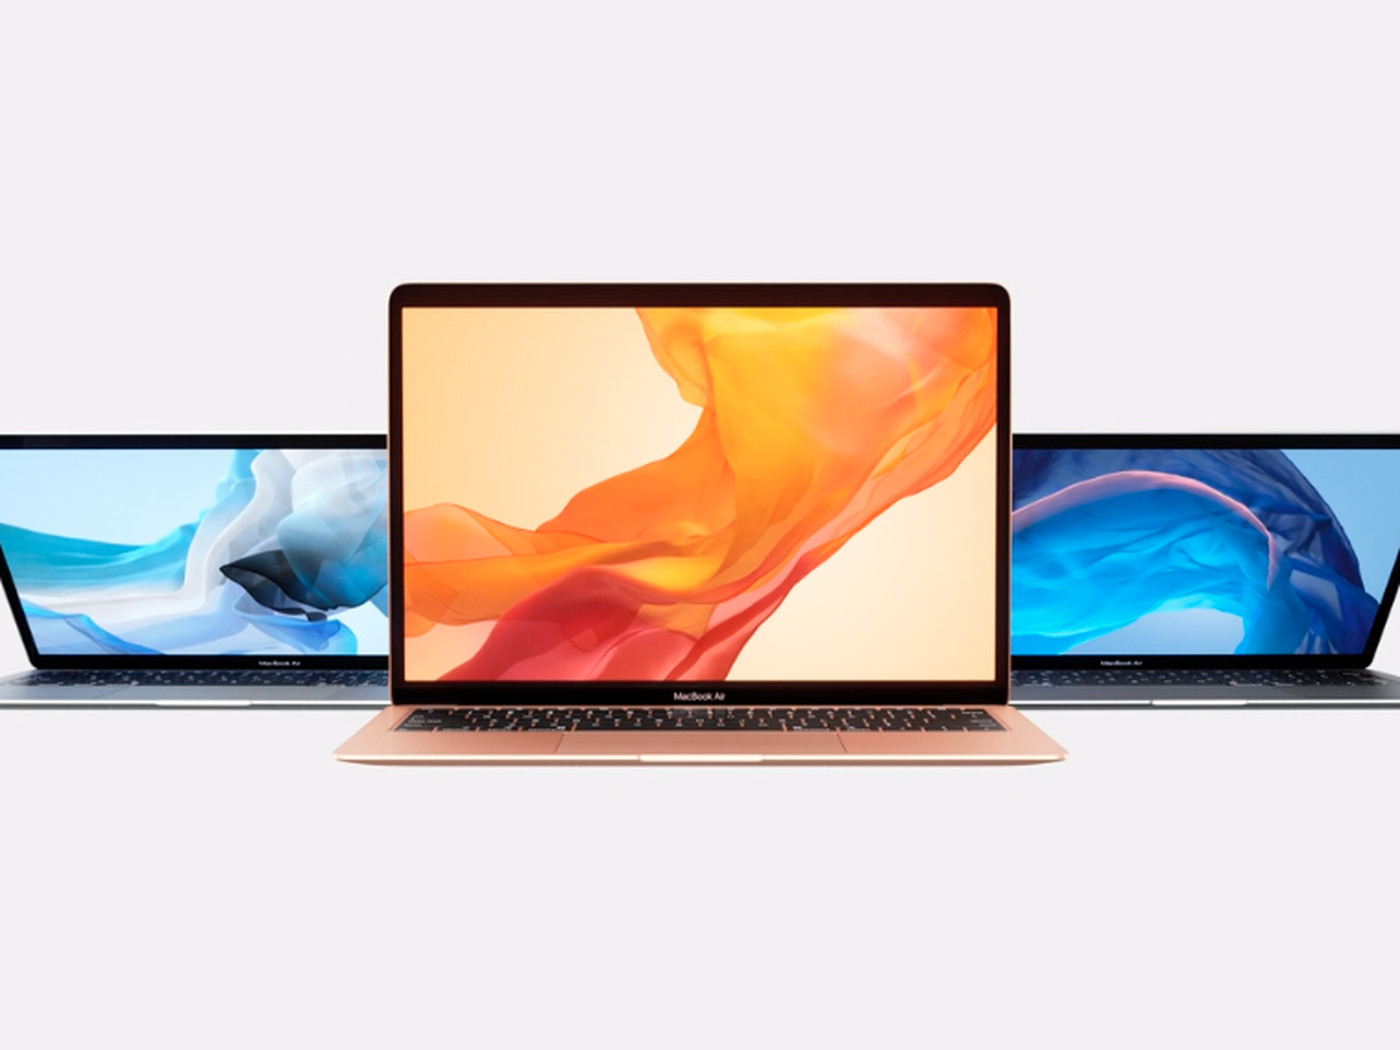 Macbook Air Apple Announces New Super Thin Laptop With Retina